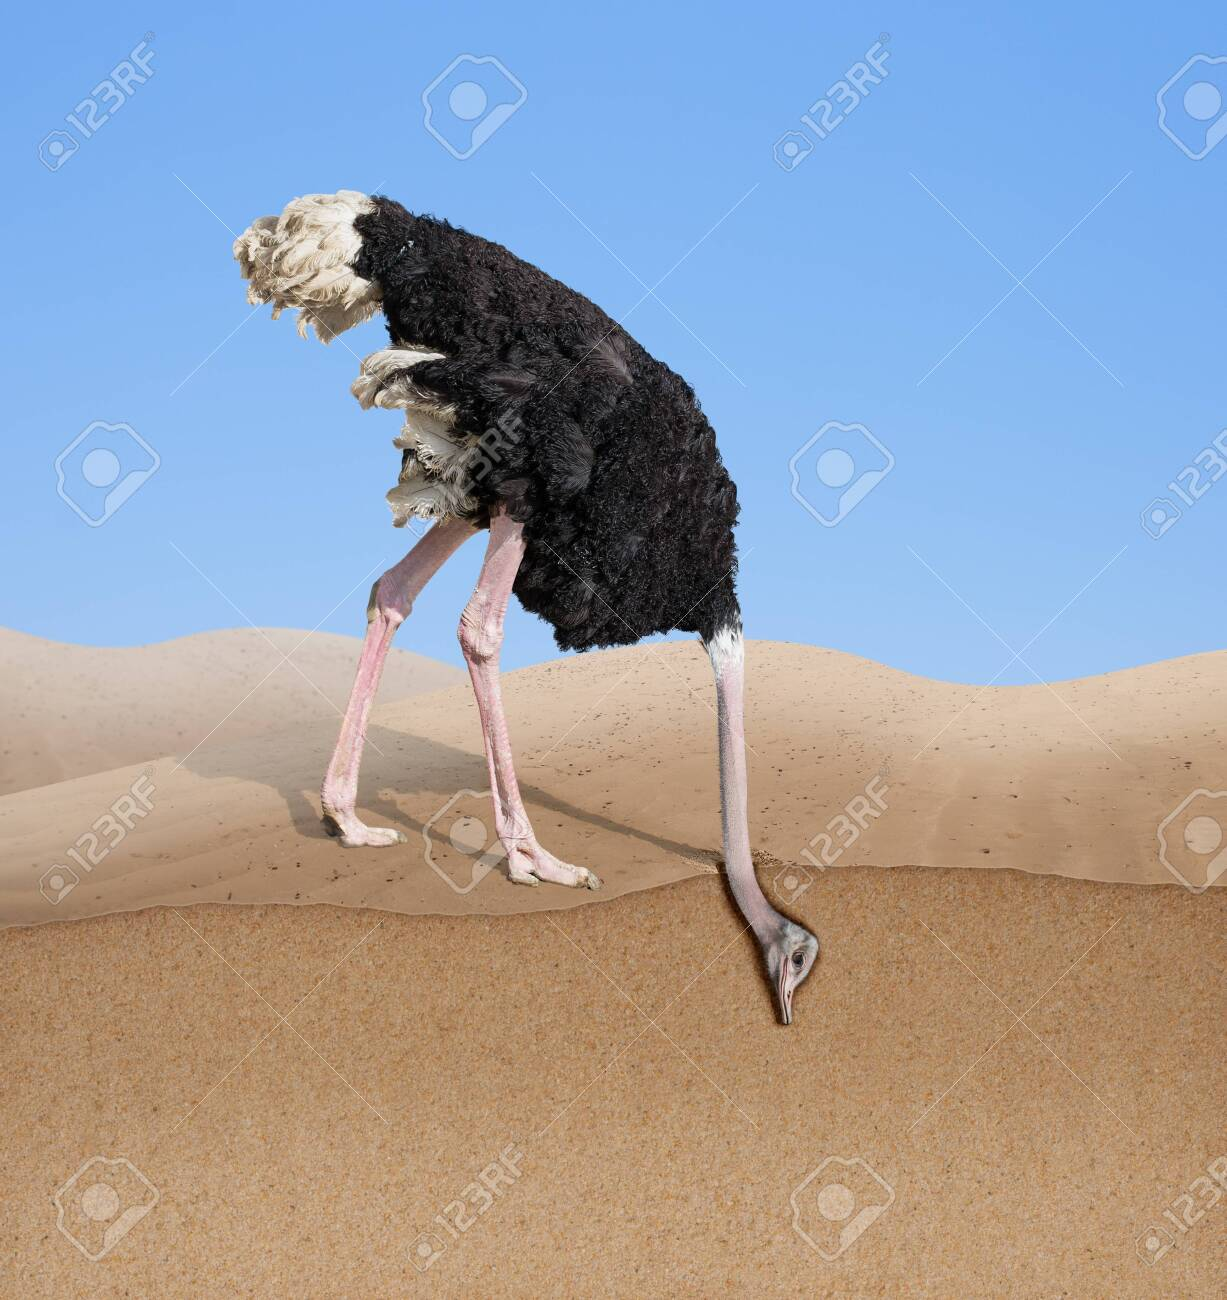 ostrich with head burying in sand - 125553684